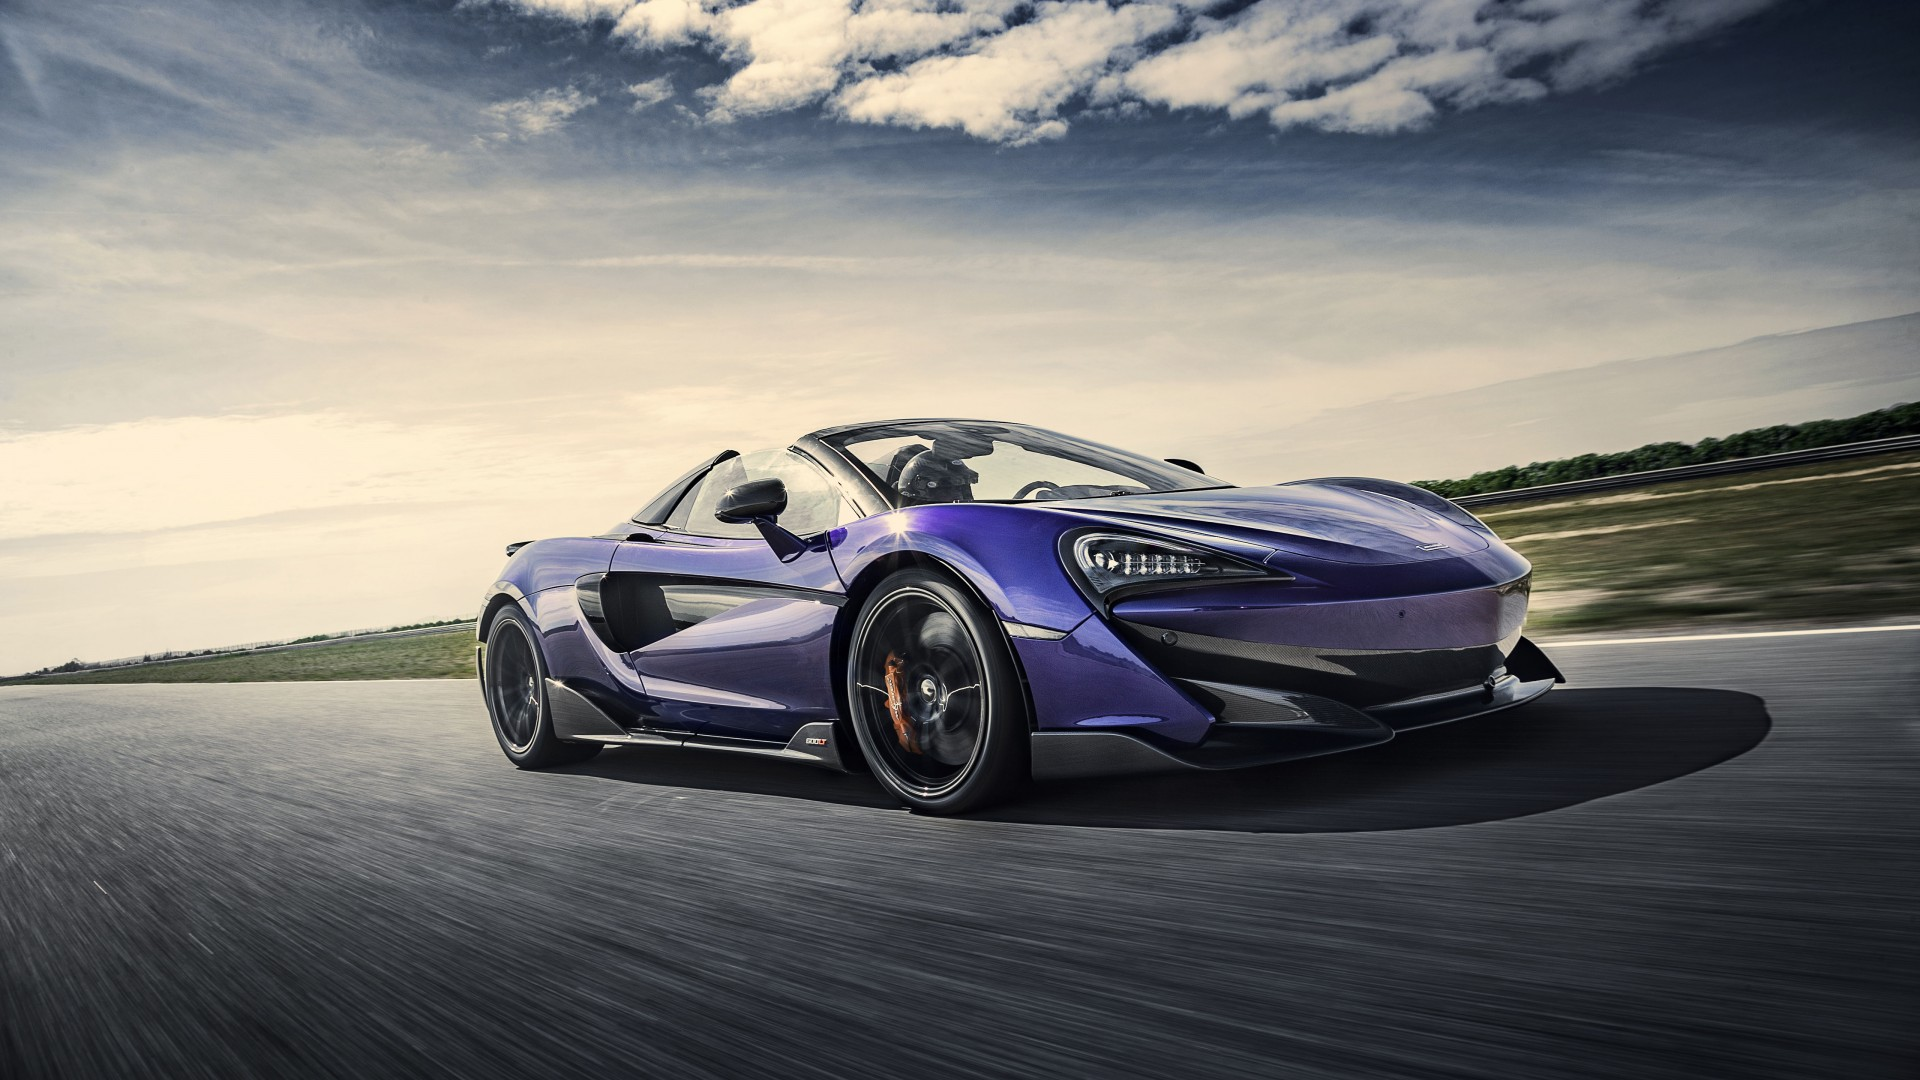 Lincoln Wallpaper Car Mclaren 600lt Spider Lantana Purple 2019 5k Wallpaper Hd